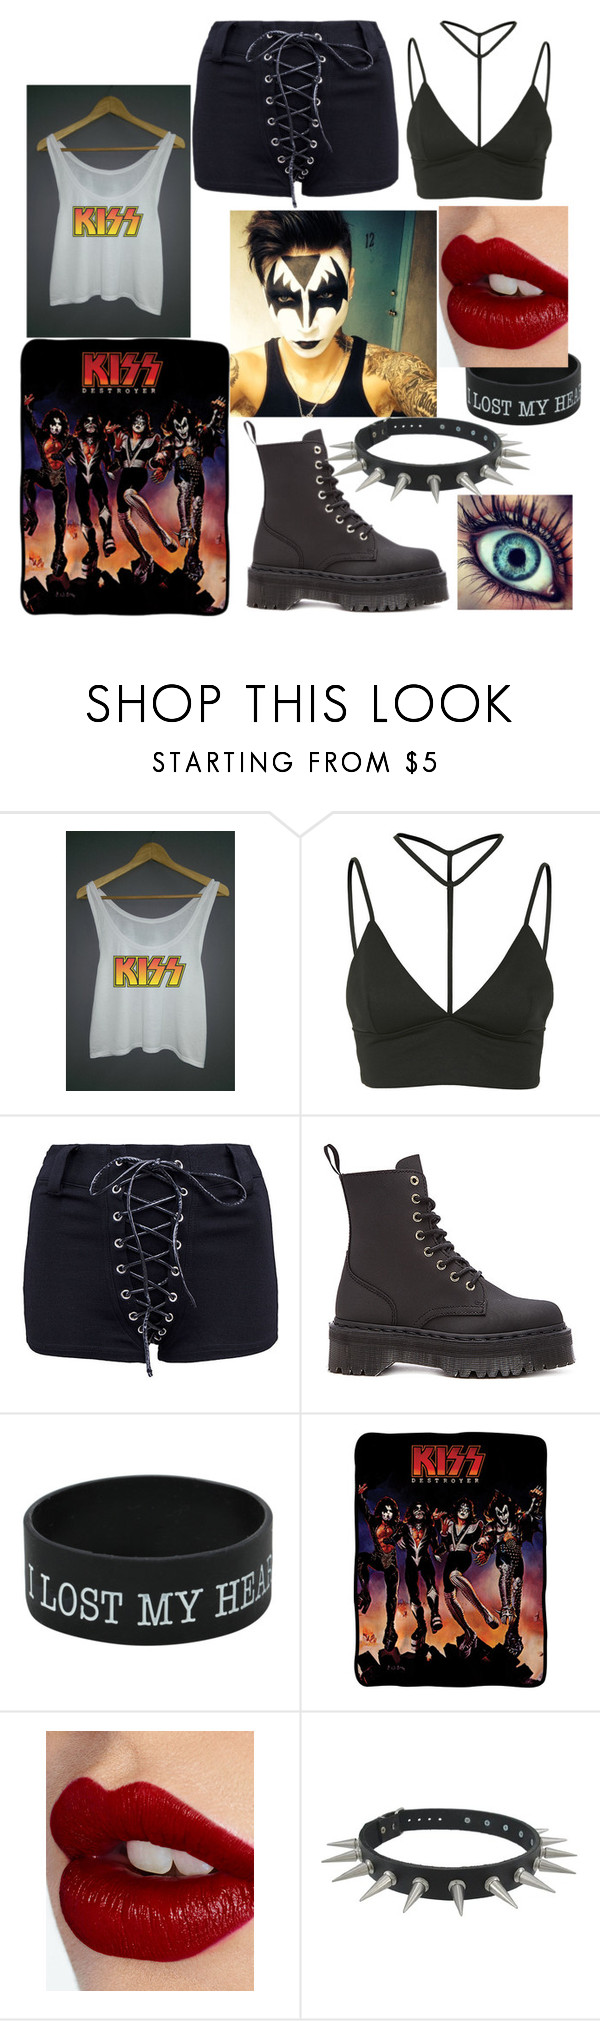 """Kiss :*"" by mayday100parade ❤ liked on Polyvore featuring Oh My Love, Dr. Martens, Kiss, Charlotte Tilbury, women's clothing, women's fashion, women, female, woman and misses"